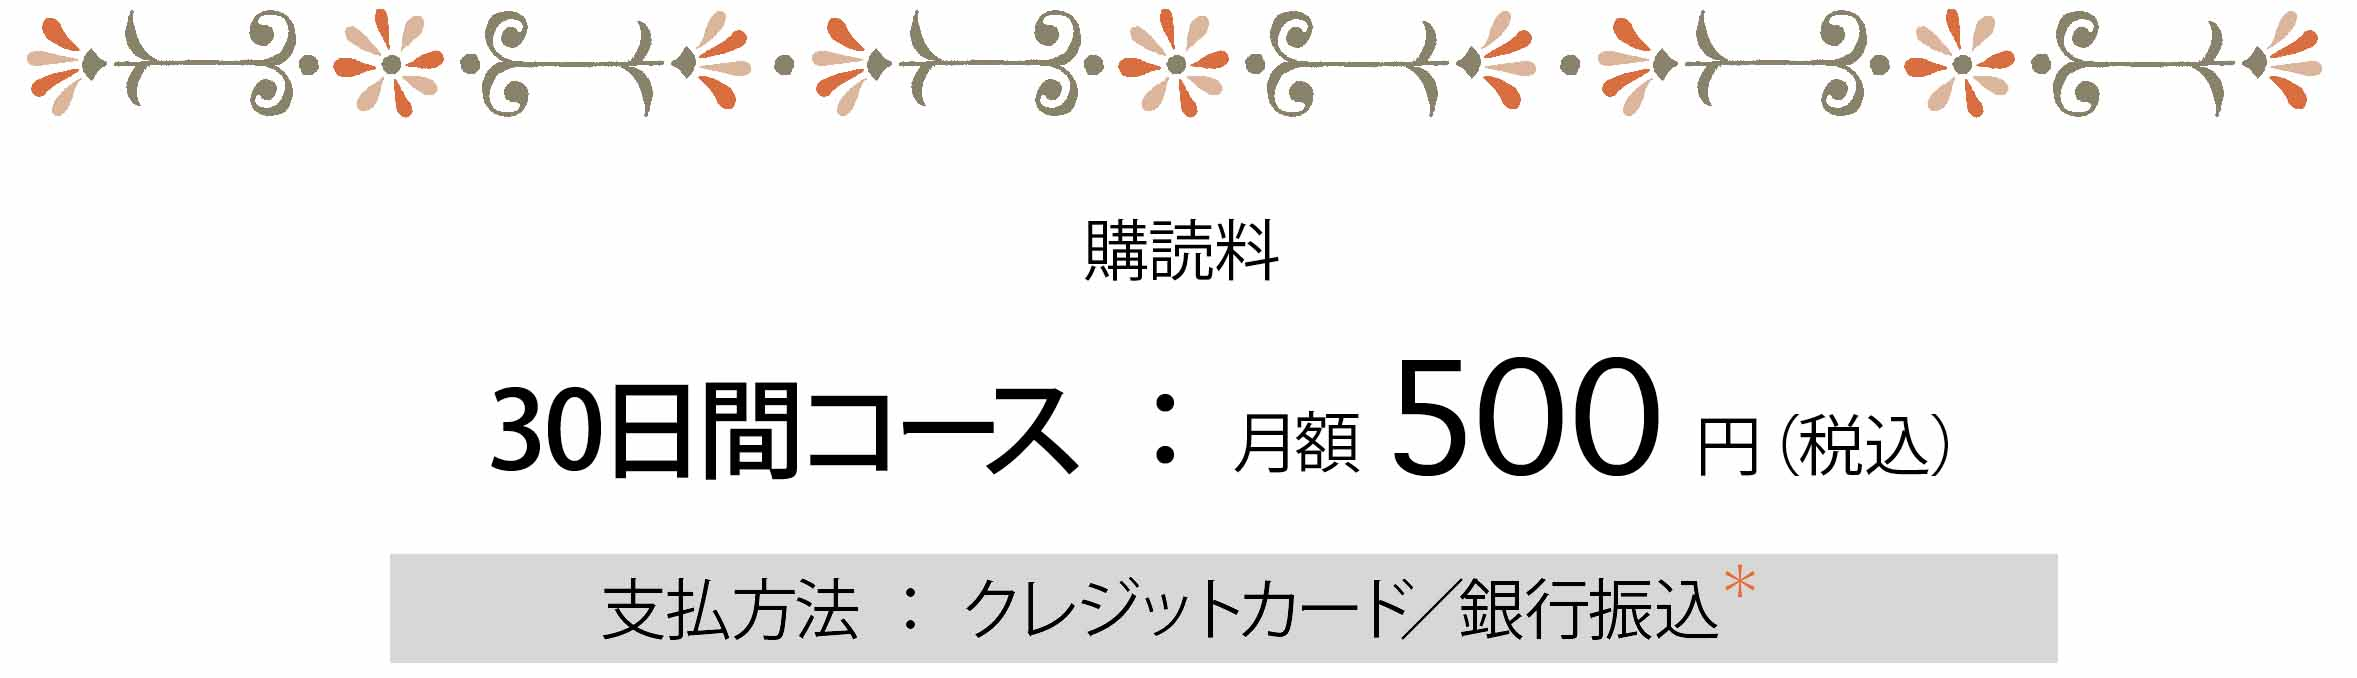 Marguerite購読料500